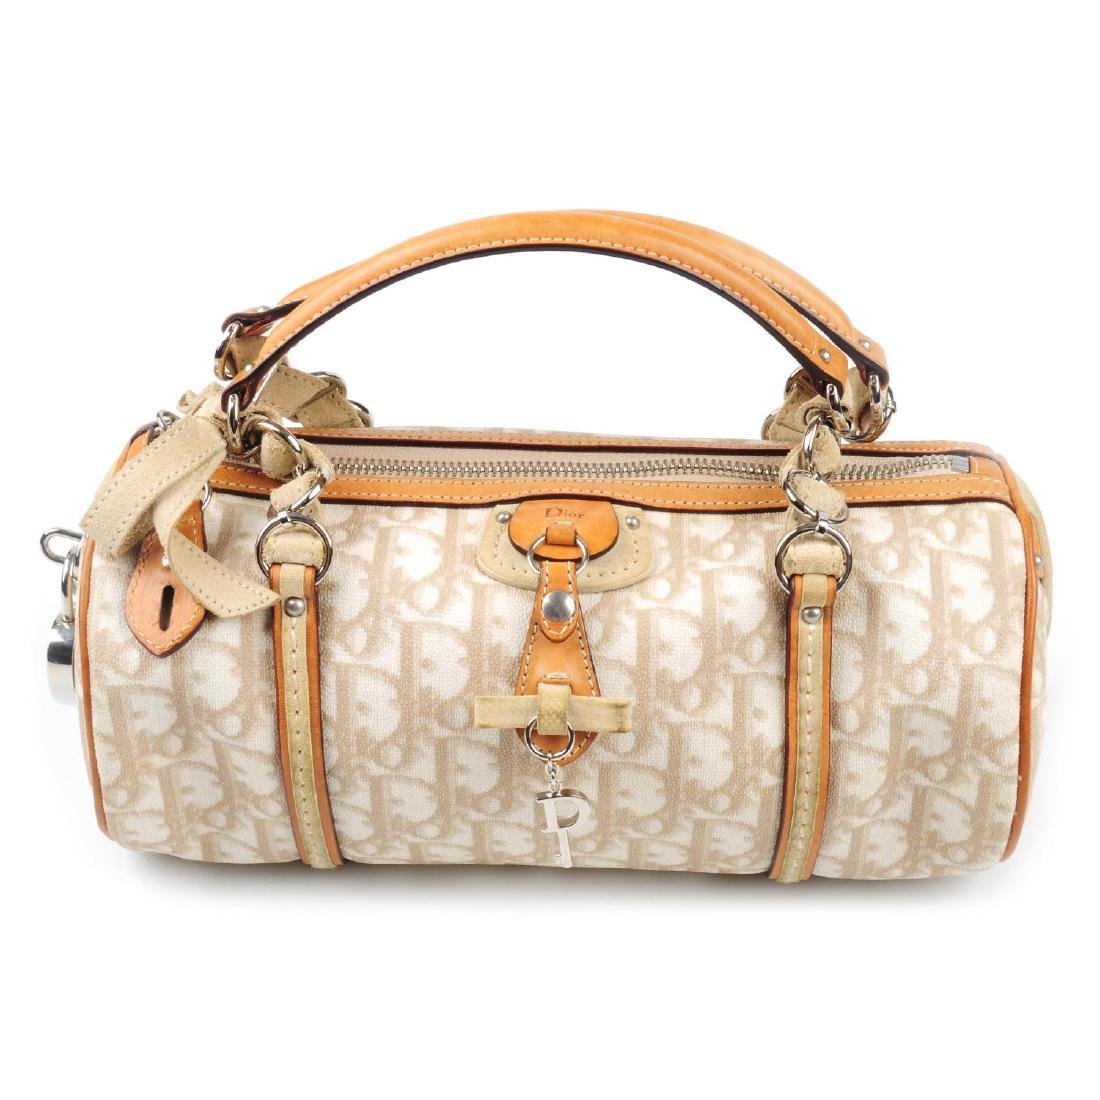 CHRISTIAN DIOR - a small Romantique barrel handbag.